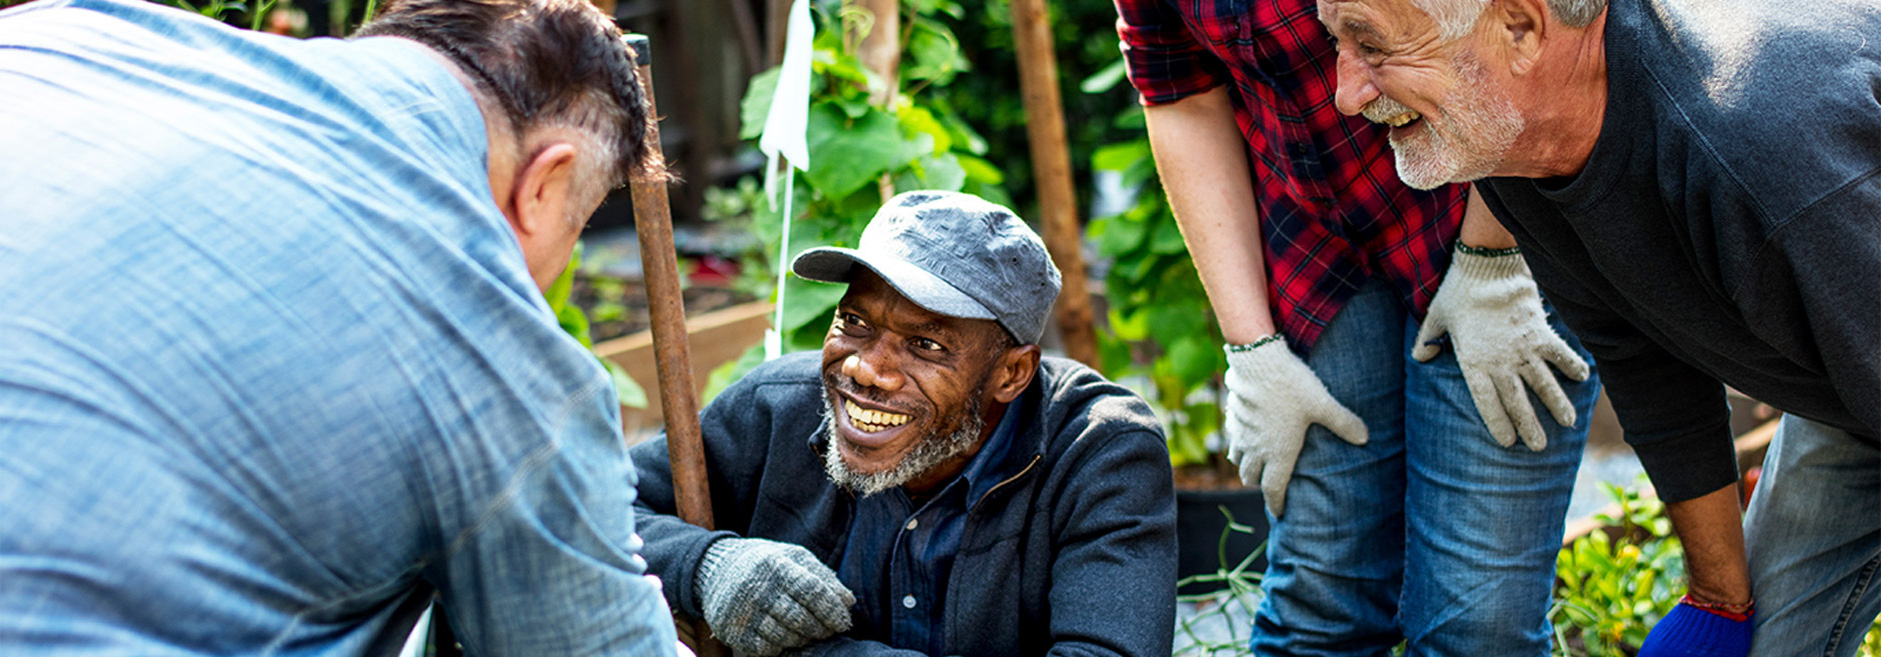 men laughing in community garden